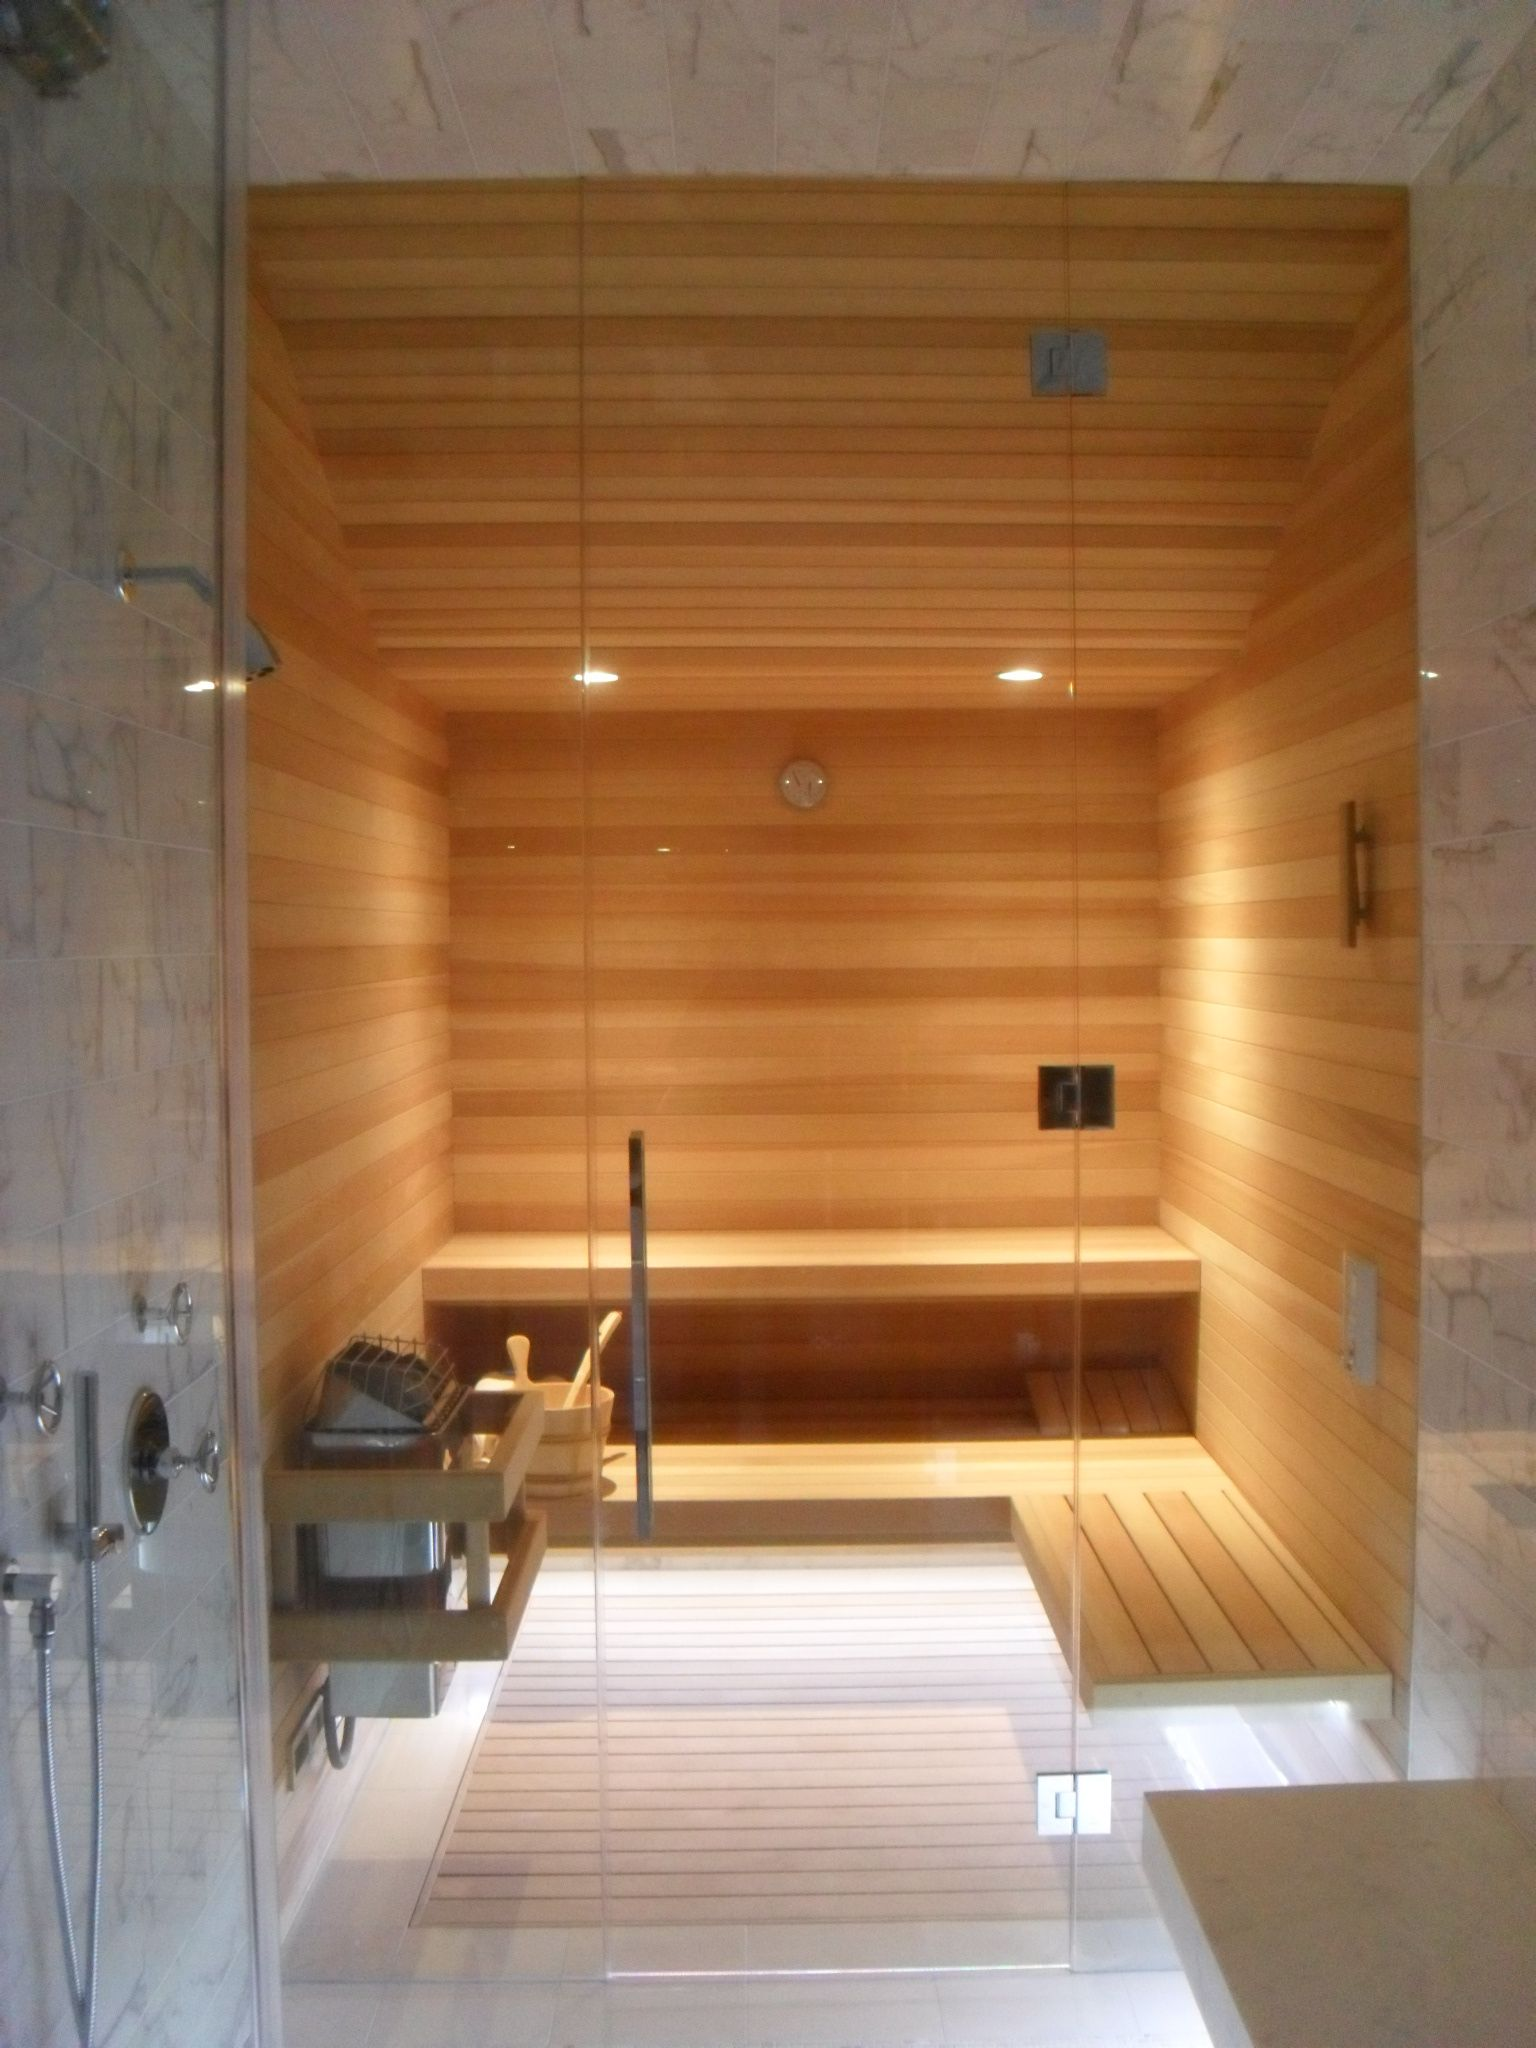 Fas Built Glass Wall Sauna With View Through Steam Room